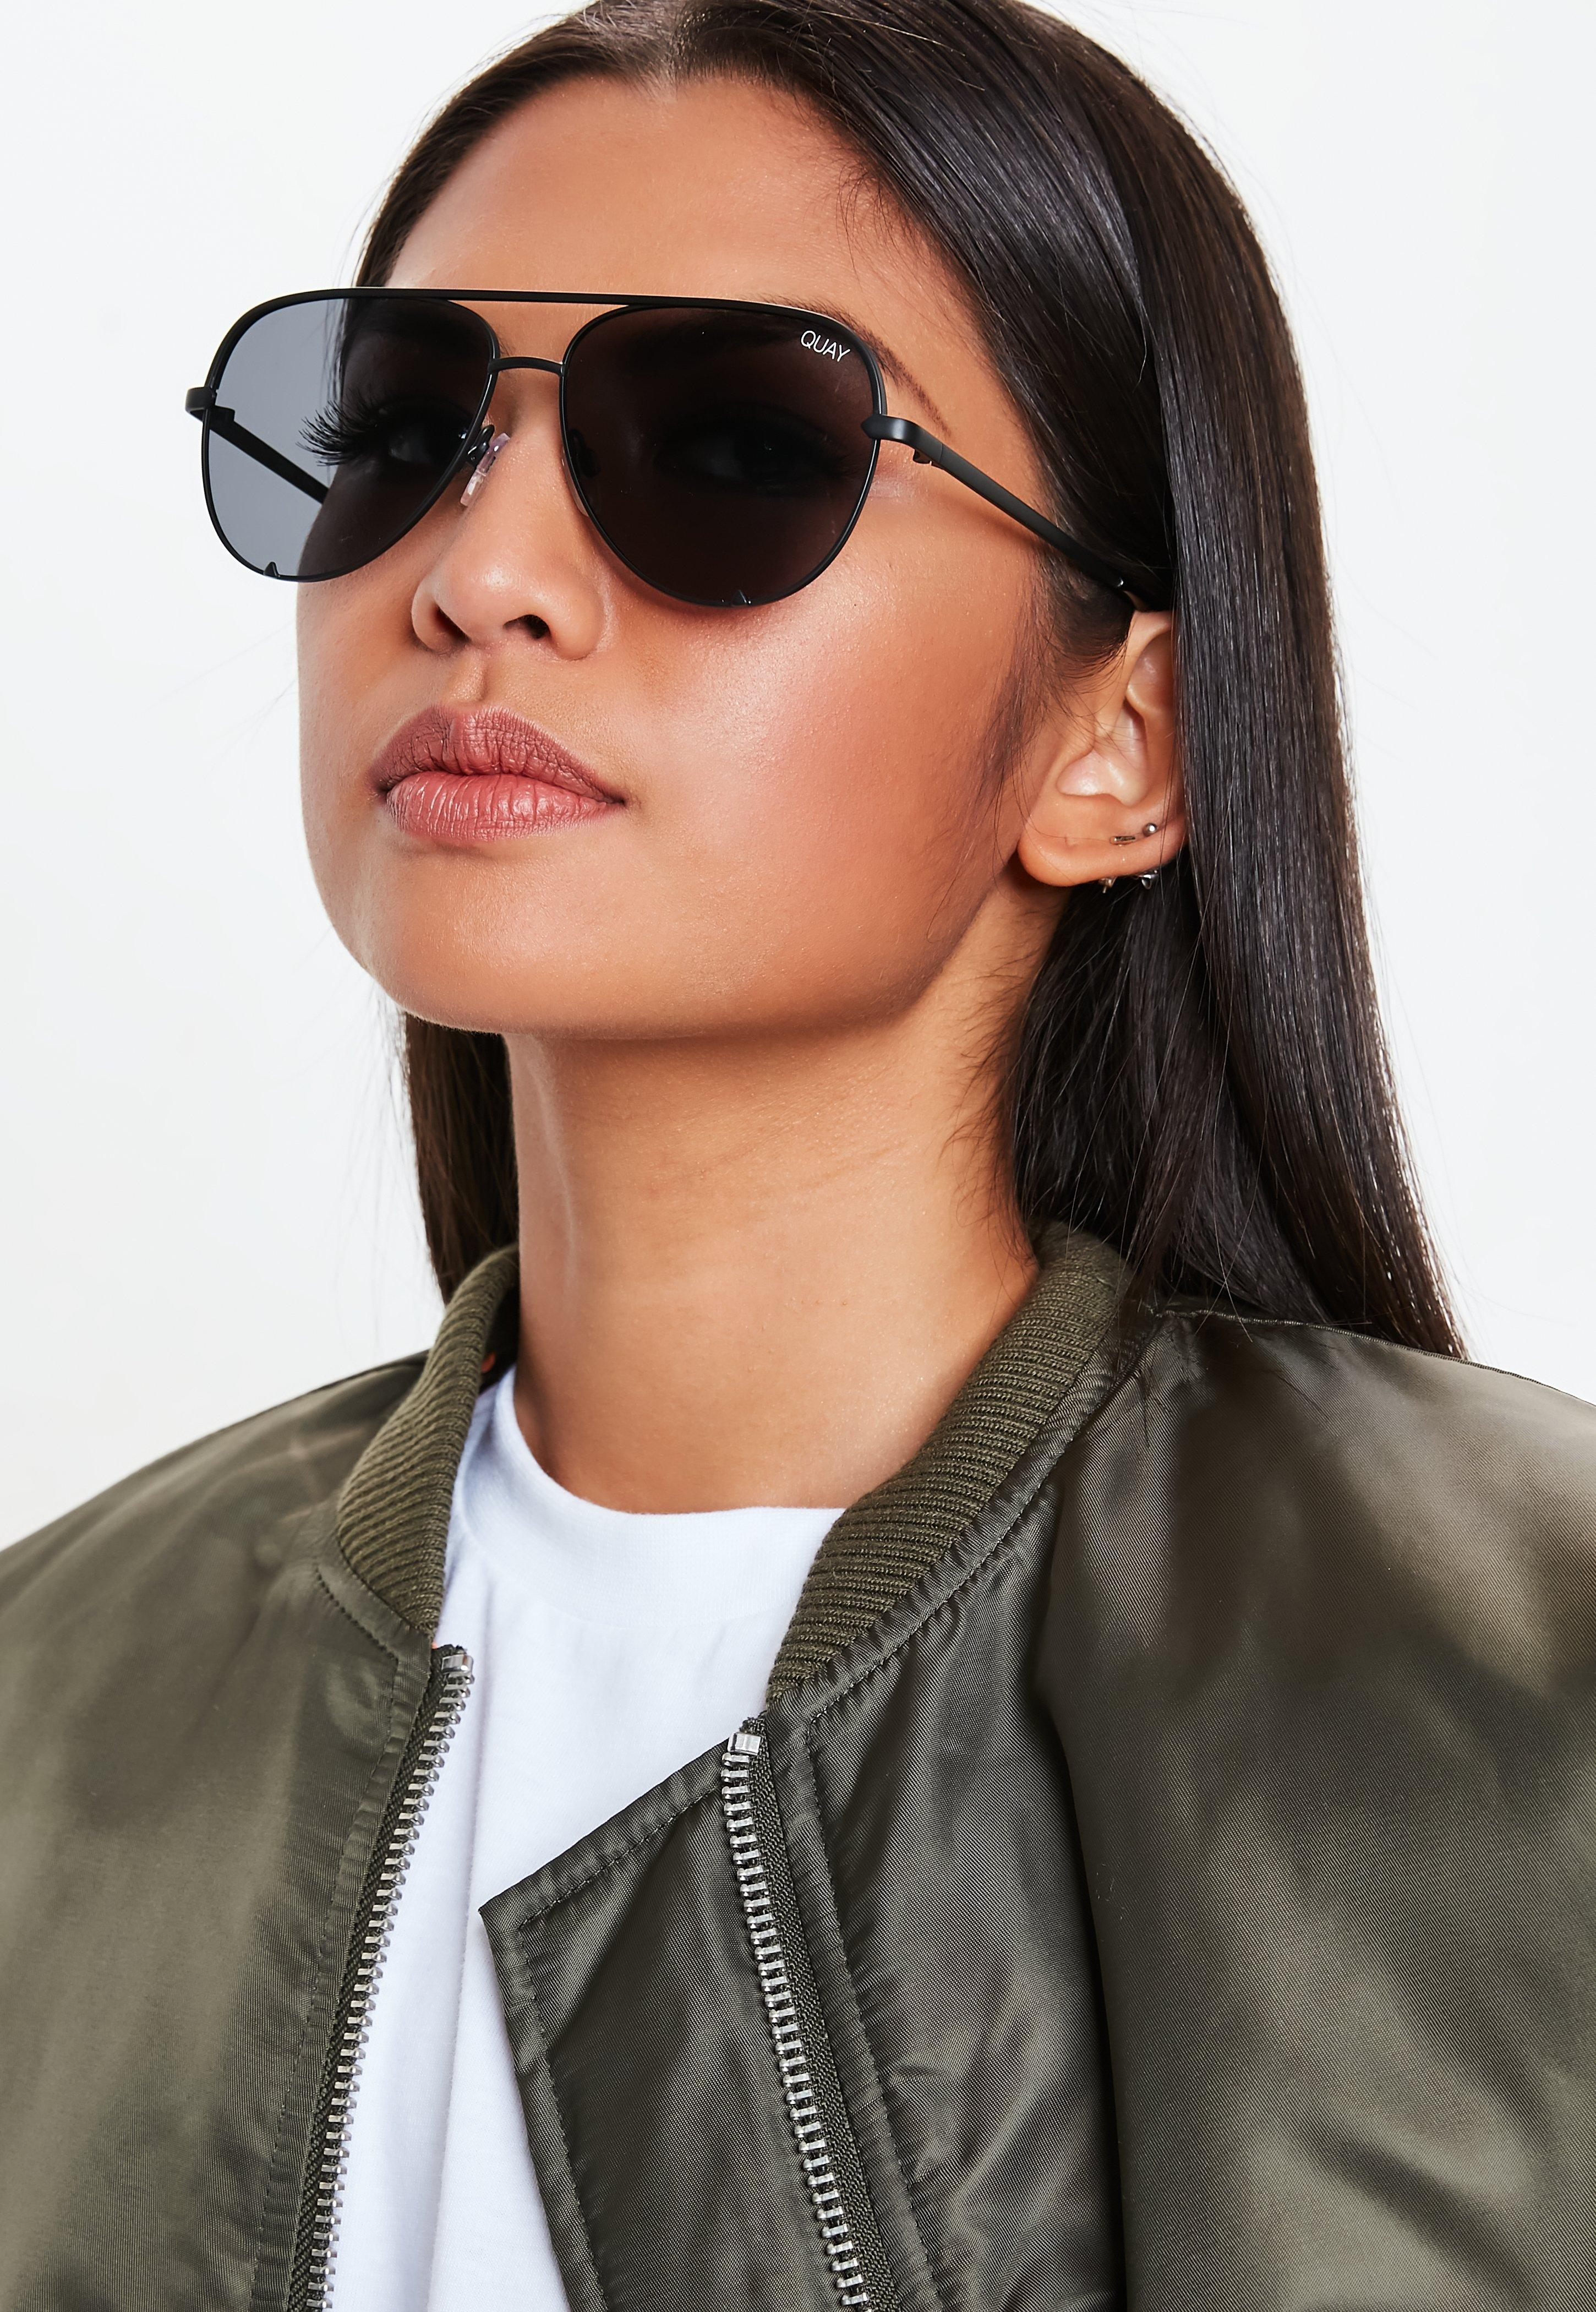 53e466e472 Missguided Quay Australia Black High Key Mini Sunglasses in Black - Lyst